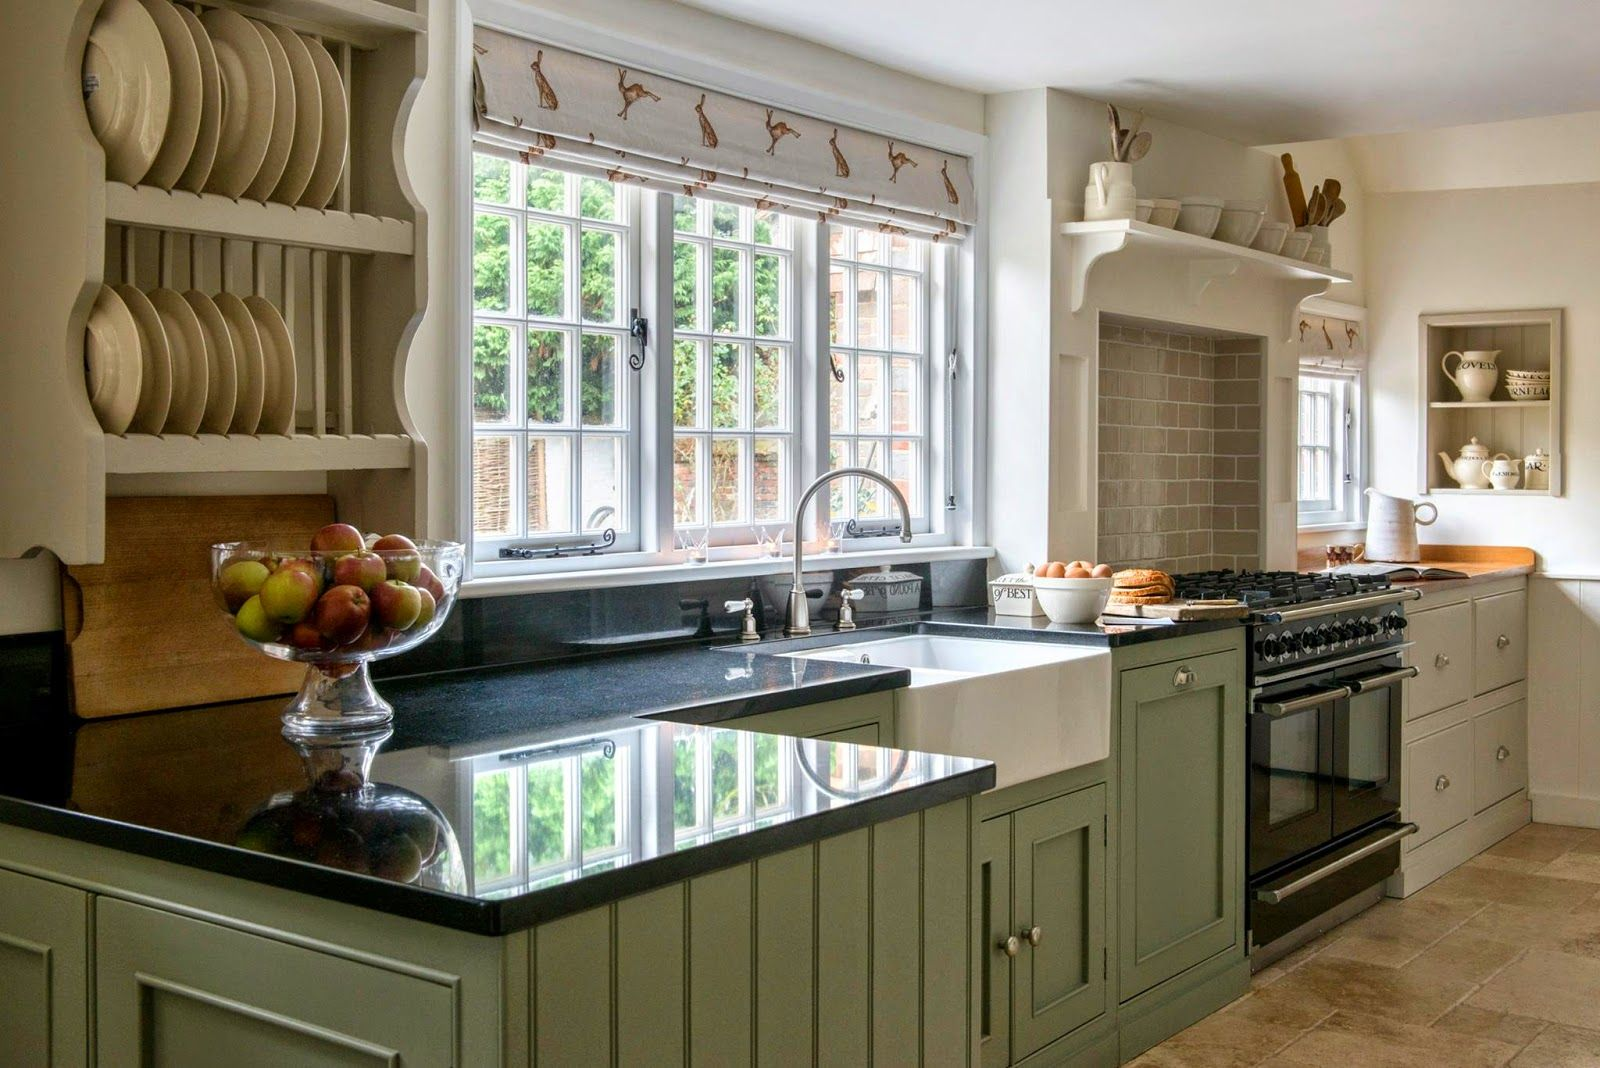 Best Modern Country Kitchen And Colour Scheme Country Chic 400 x 300